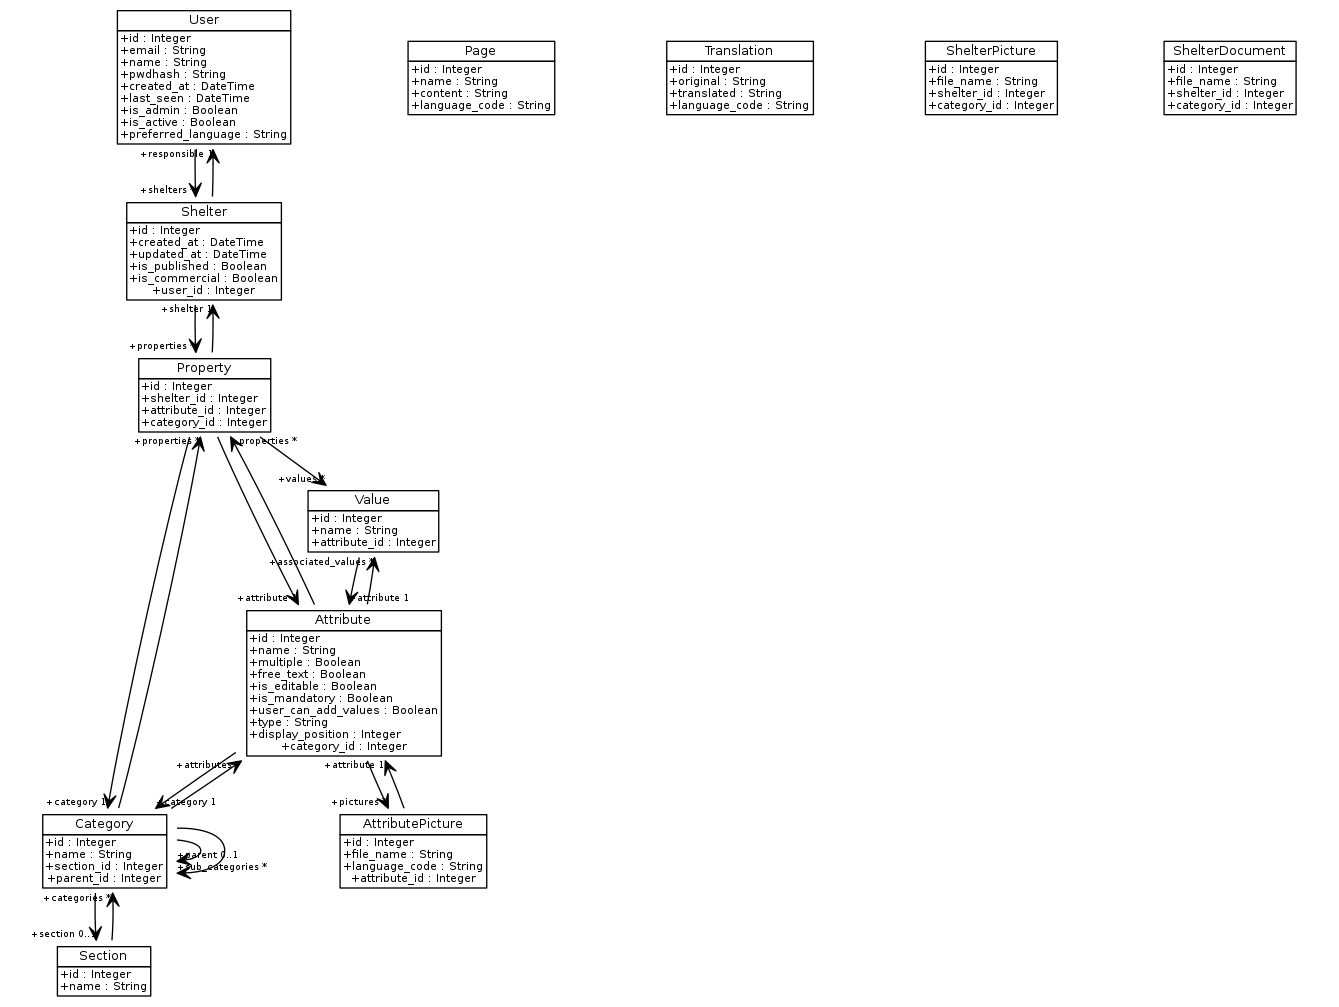 documentation/_static/uml_graph.png